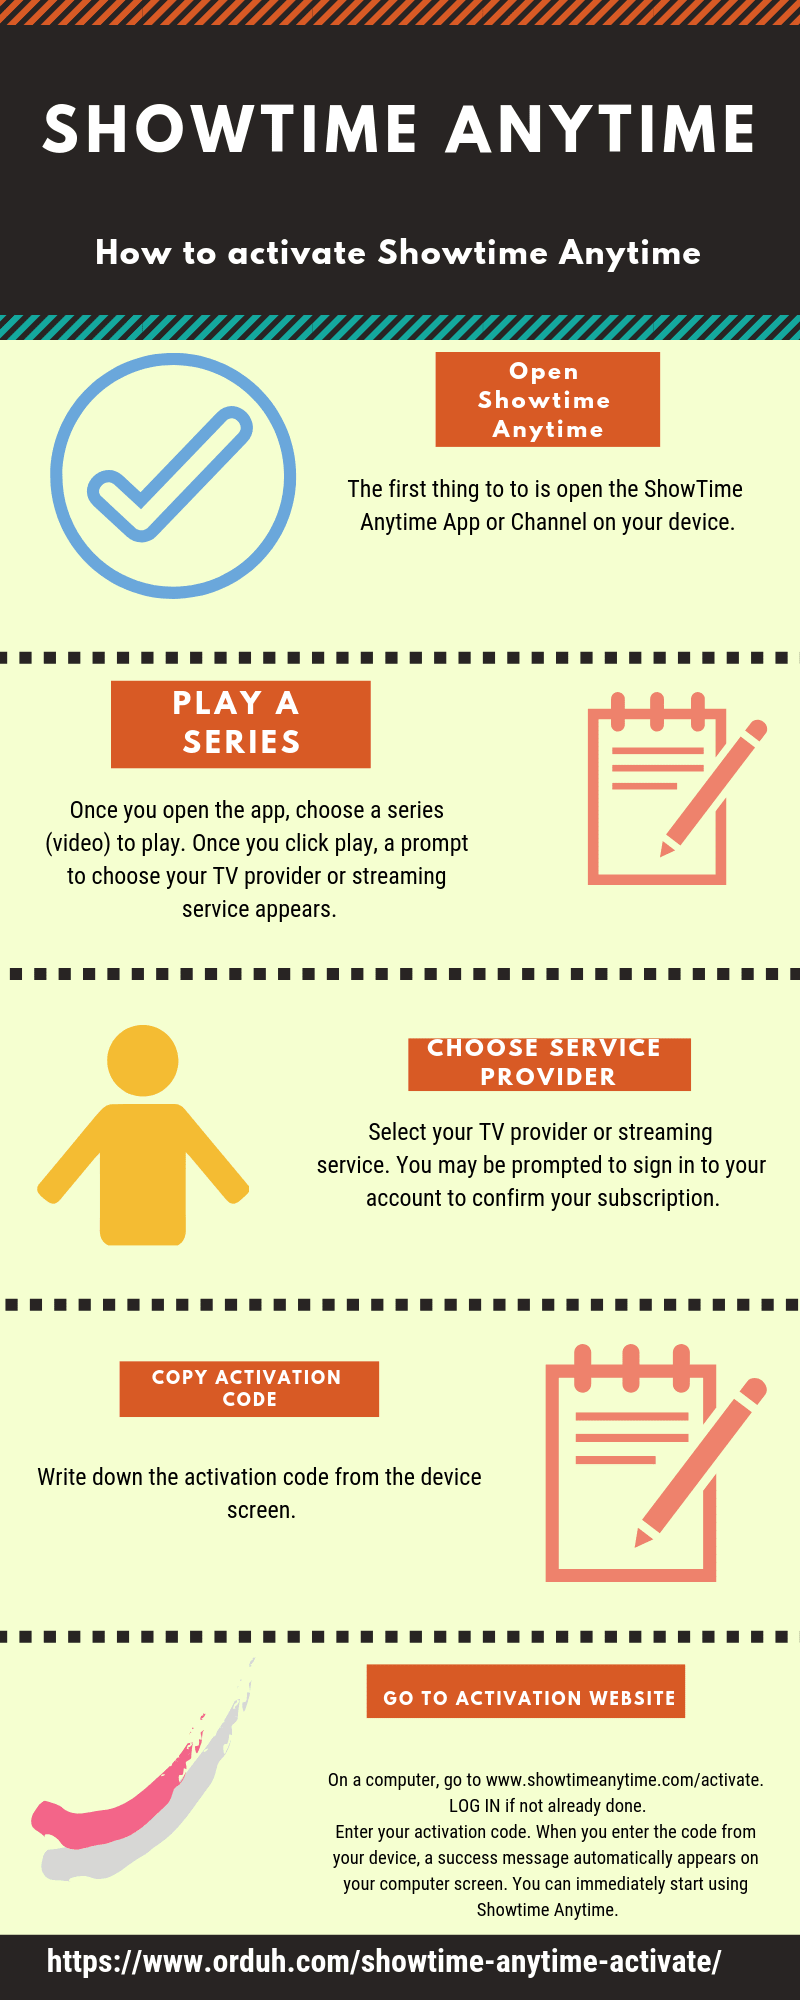 Infographic showing How To Activate Showtime Anytime Via showtime.com/activate